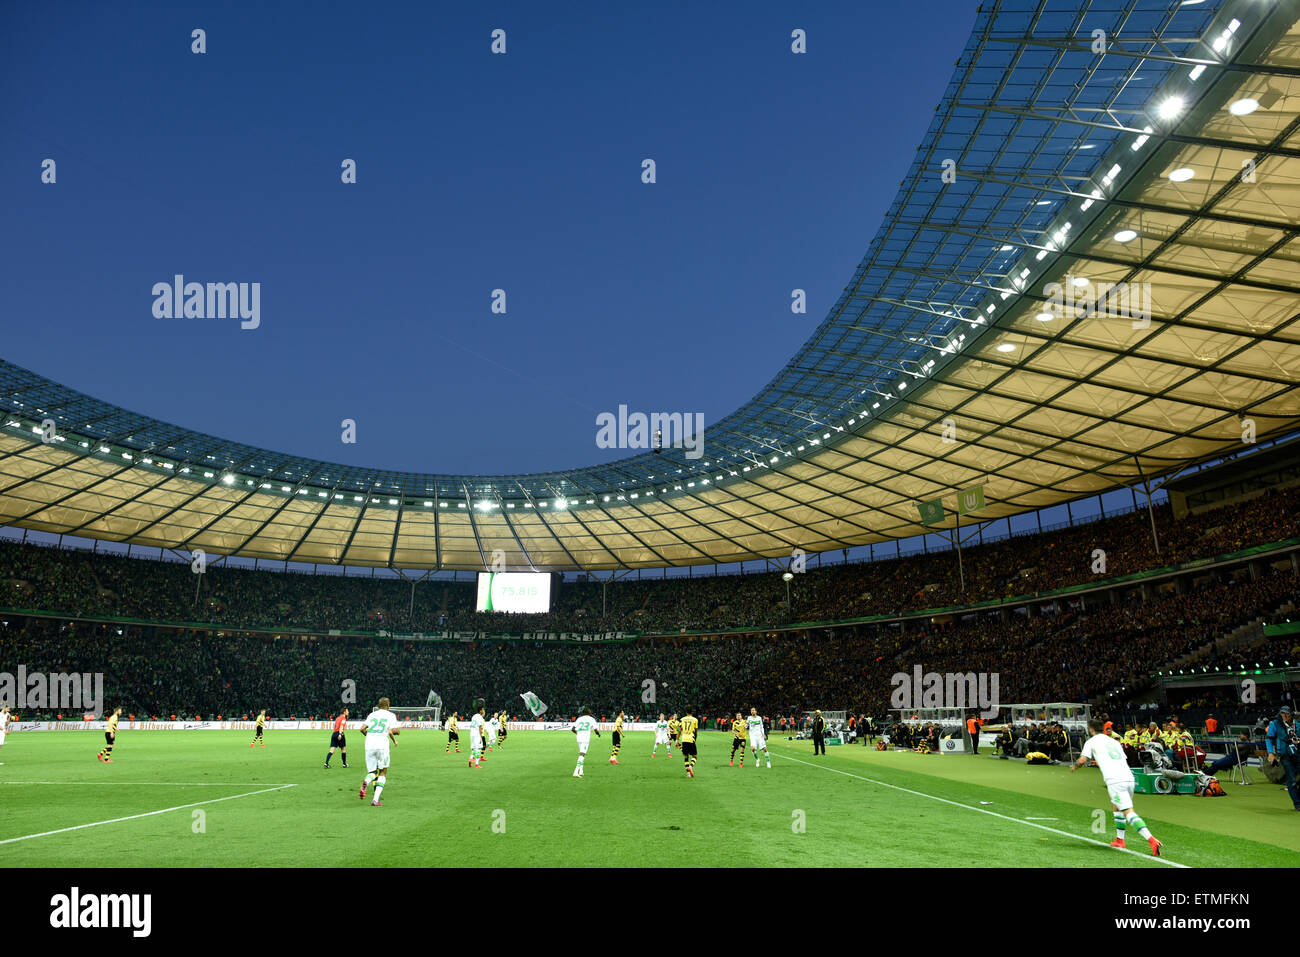 DFB Cup Final 2015, Stadio Olimpico di sera, Berlino, Germania Immagini Stock